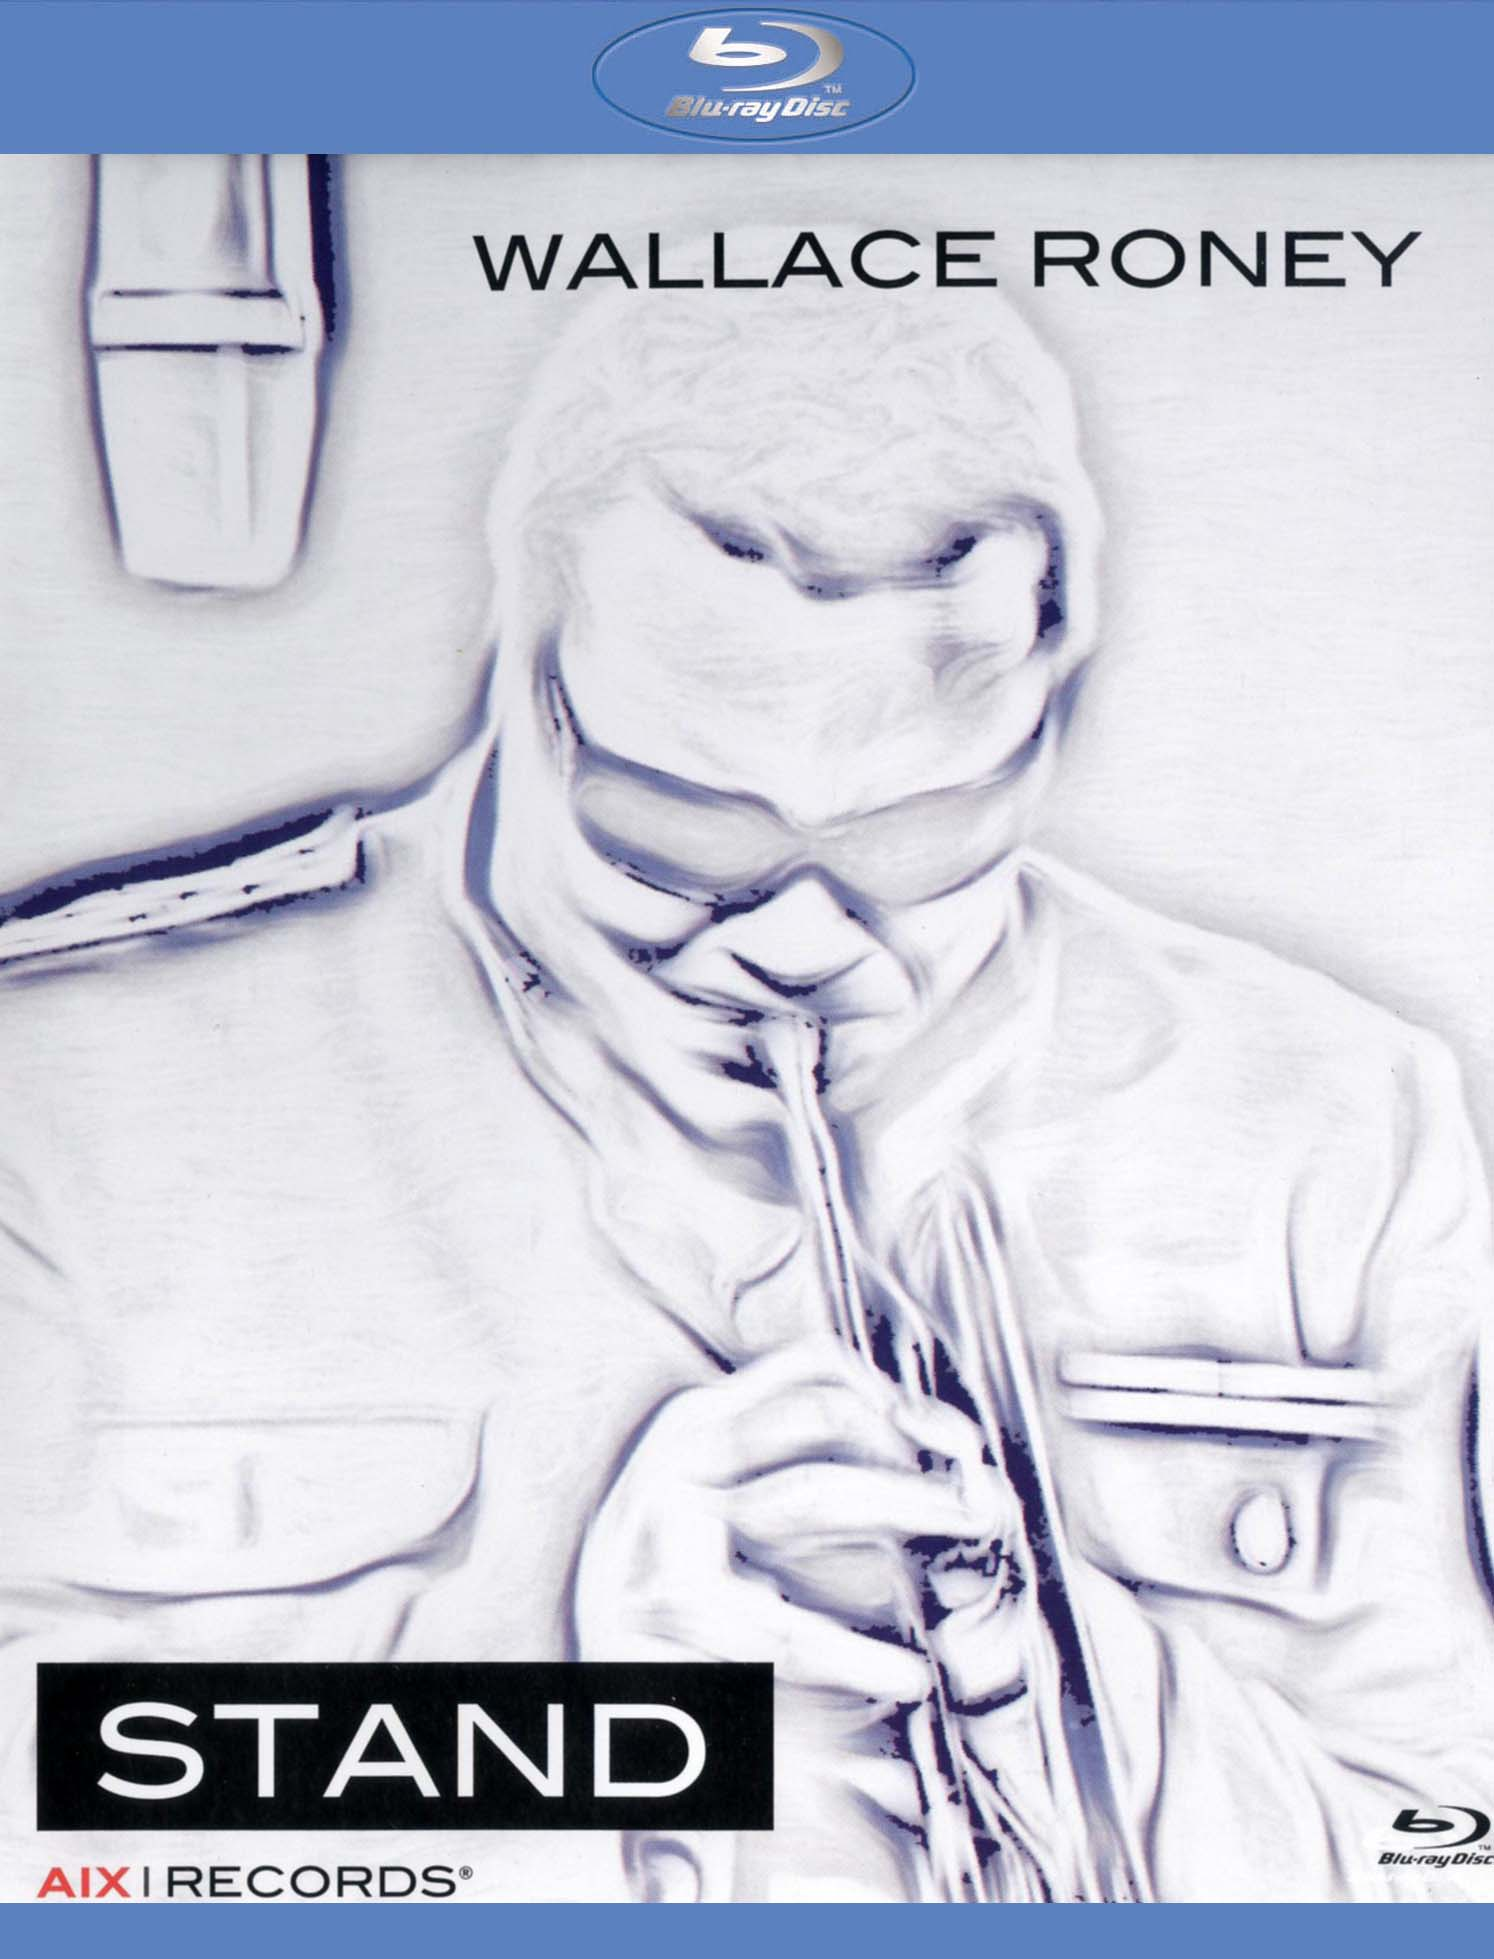 Wallace Roney: Stand